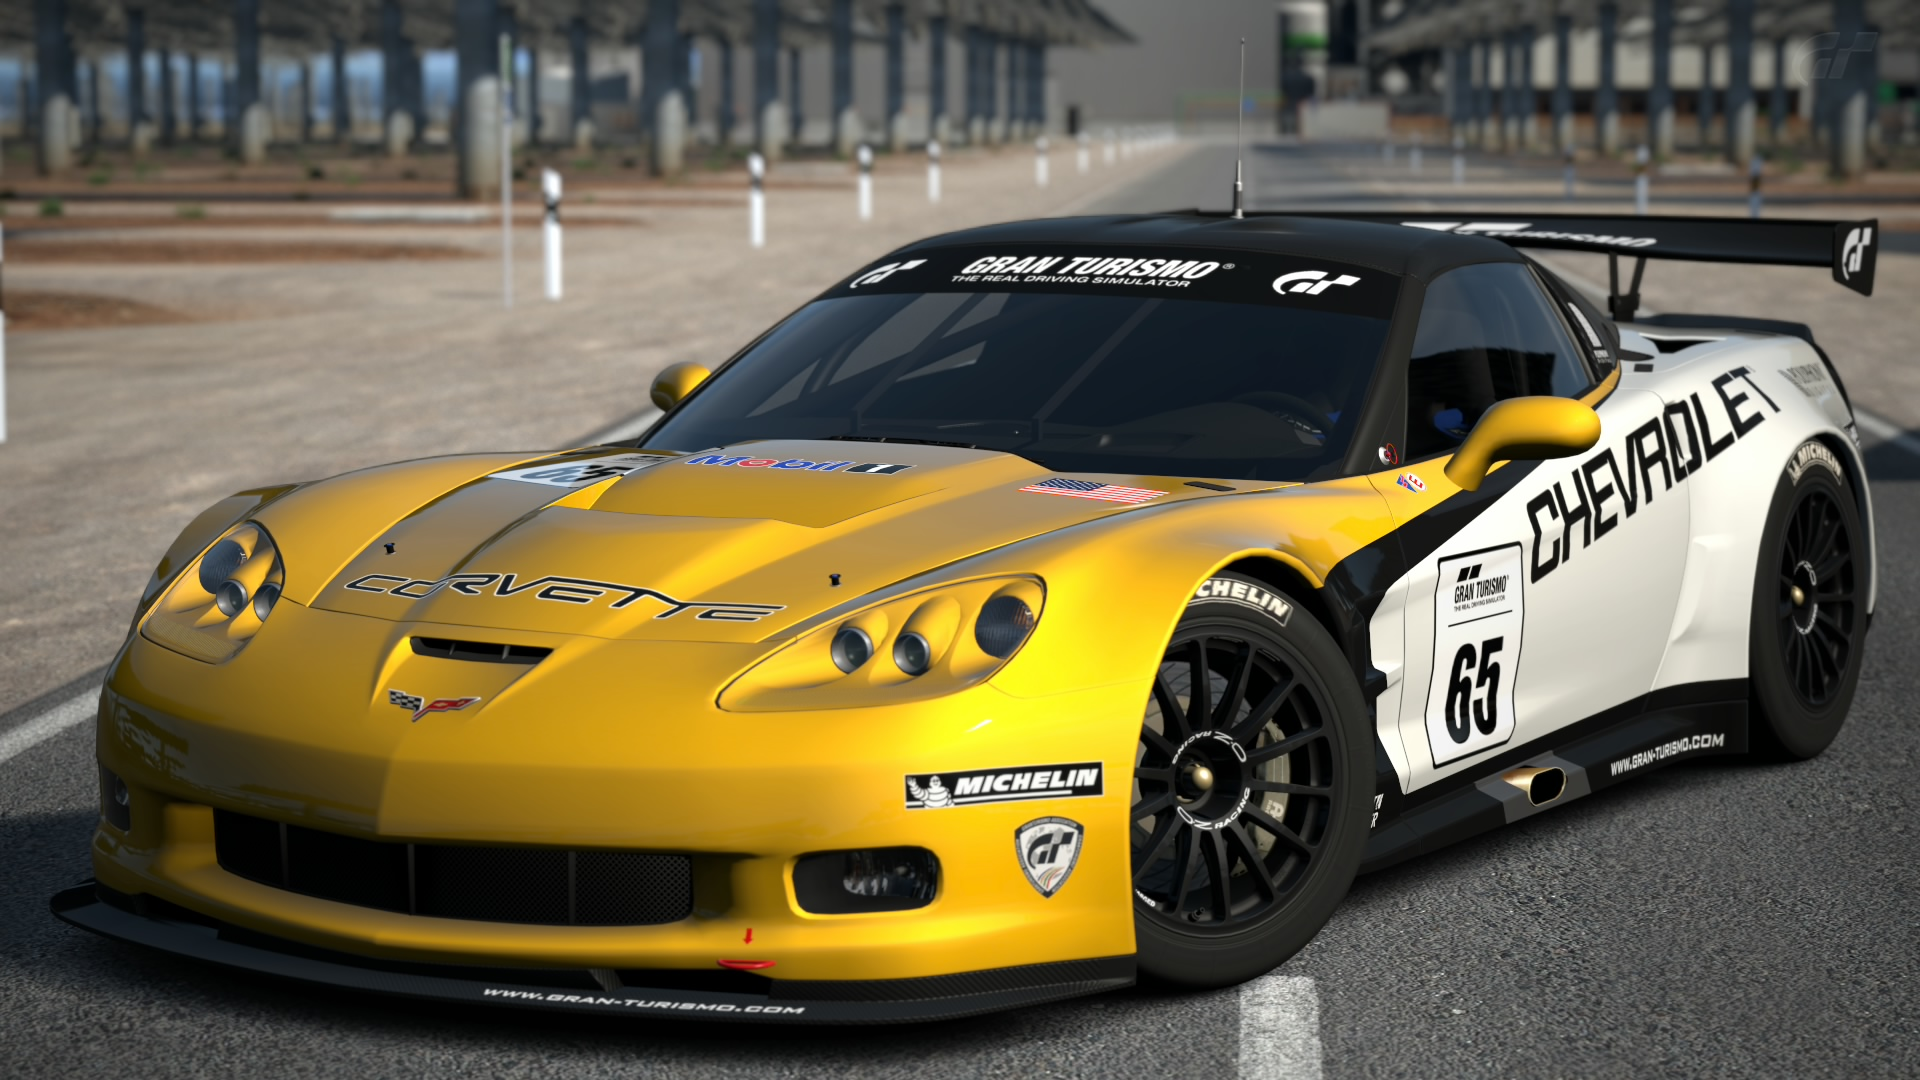 racing modifications gran turismo wiki fandom powered by wikia. Black Bedroom Furniture Sets. Home Design Ideas